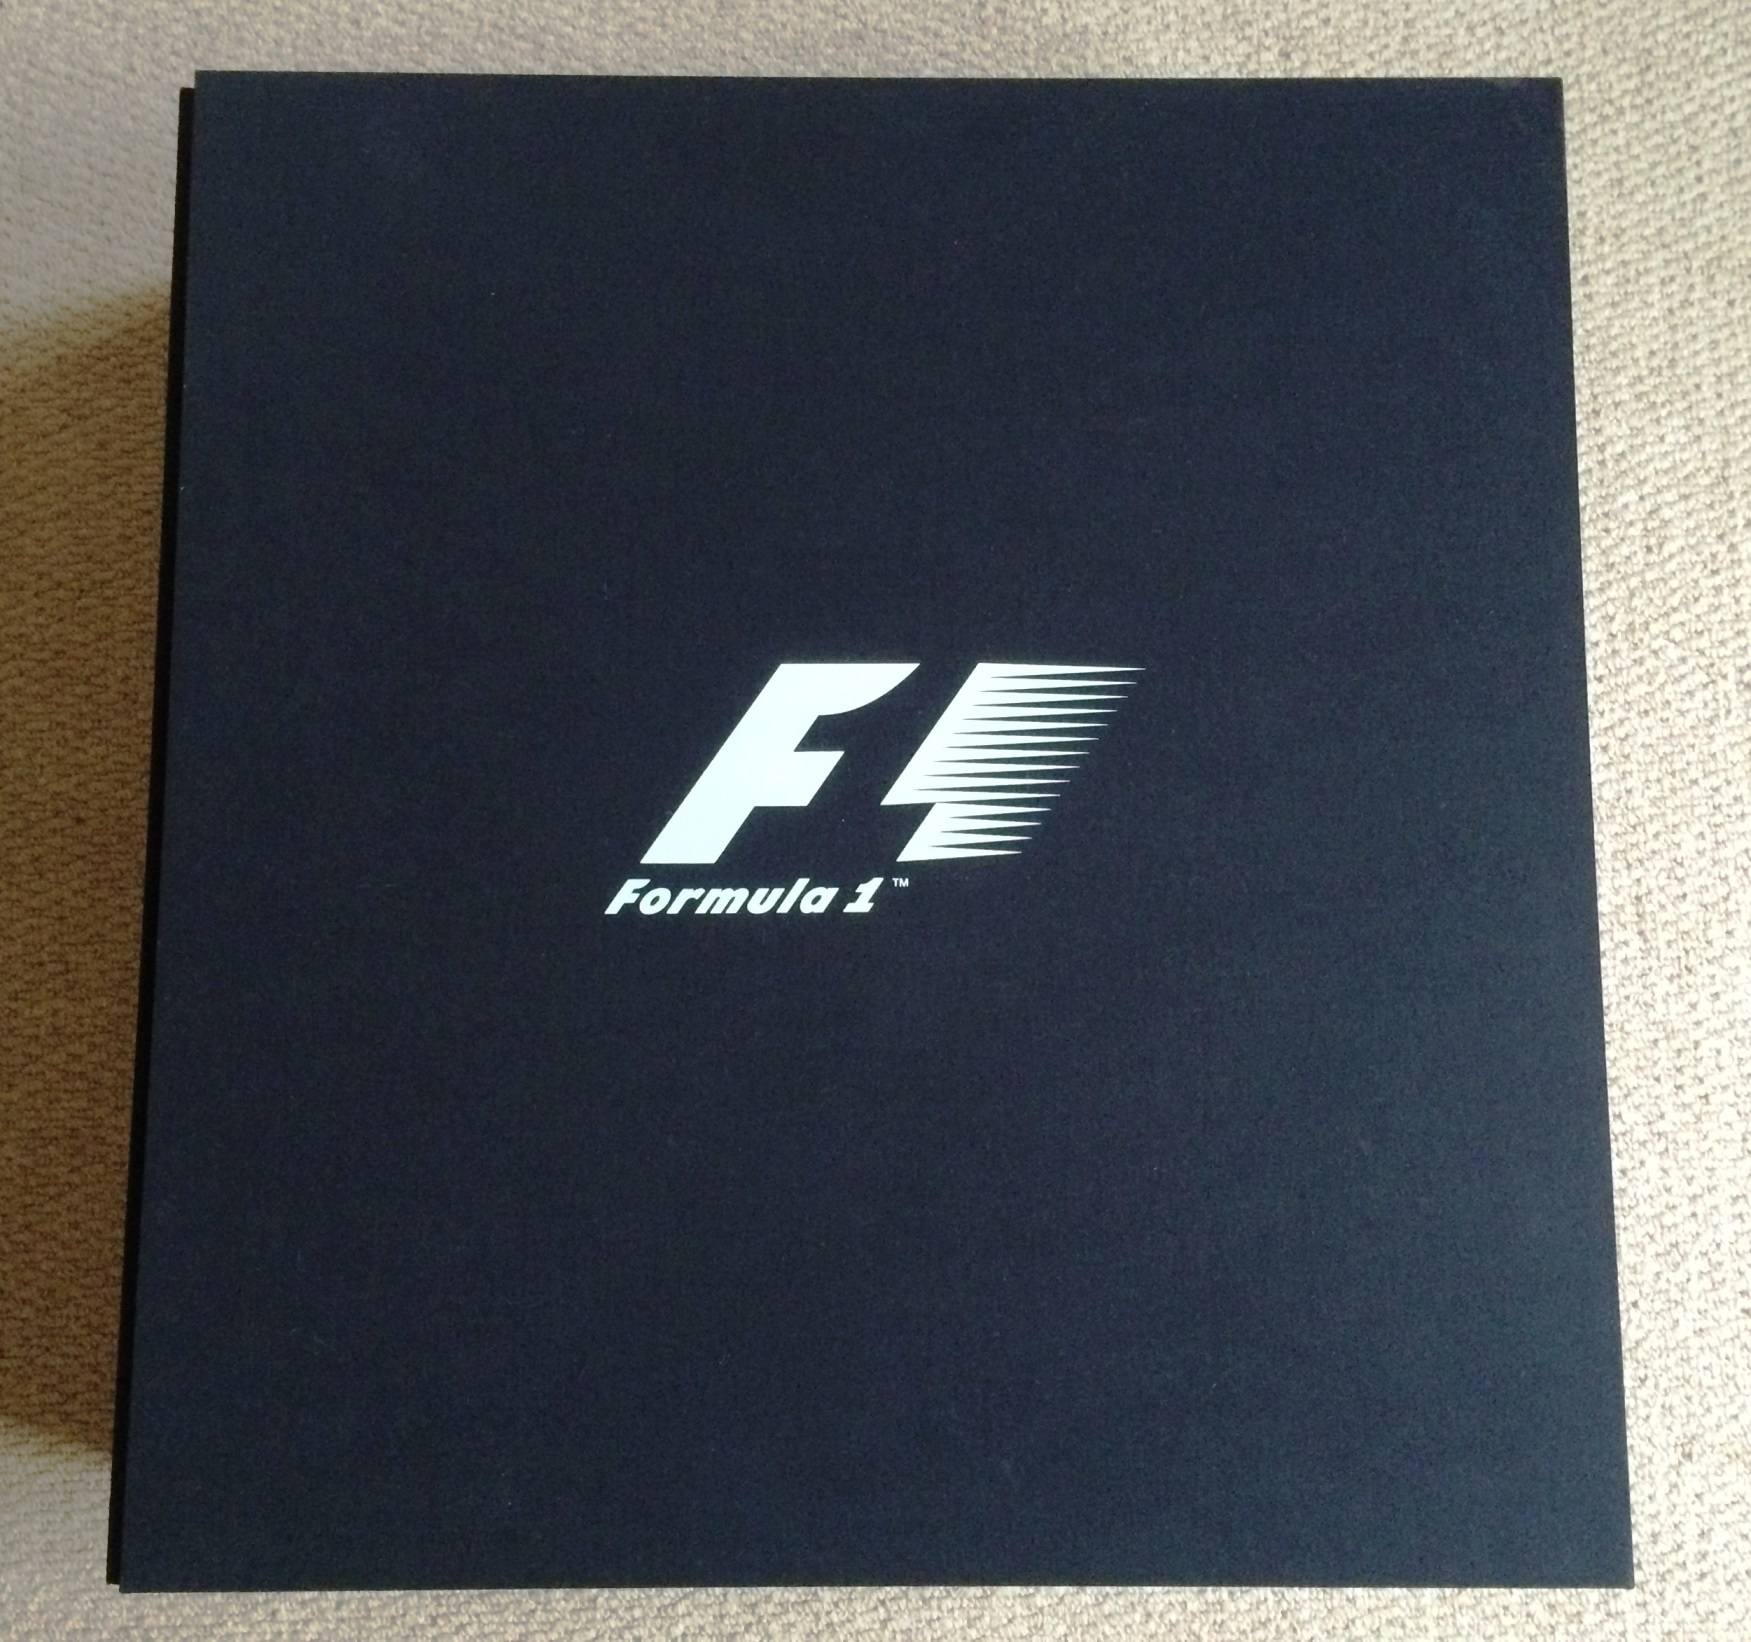 THE OFFICIAL FORMULA 1 OPUS The Classic Edition, limited edition, 1 leather bound volume of 852 pages, approx 1000 images, 50 x 50cm in outer protective case